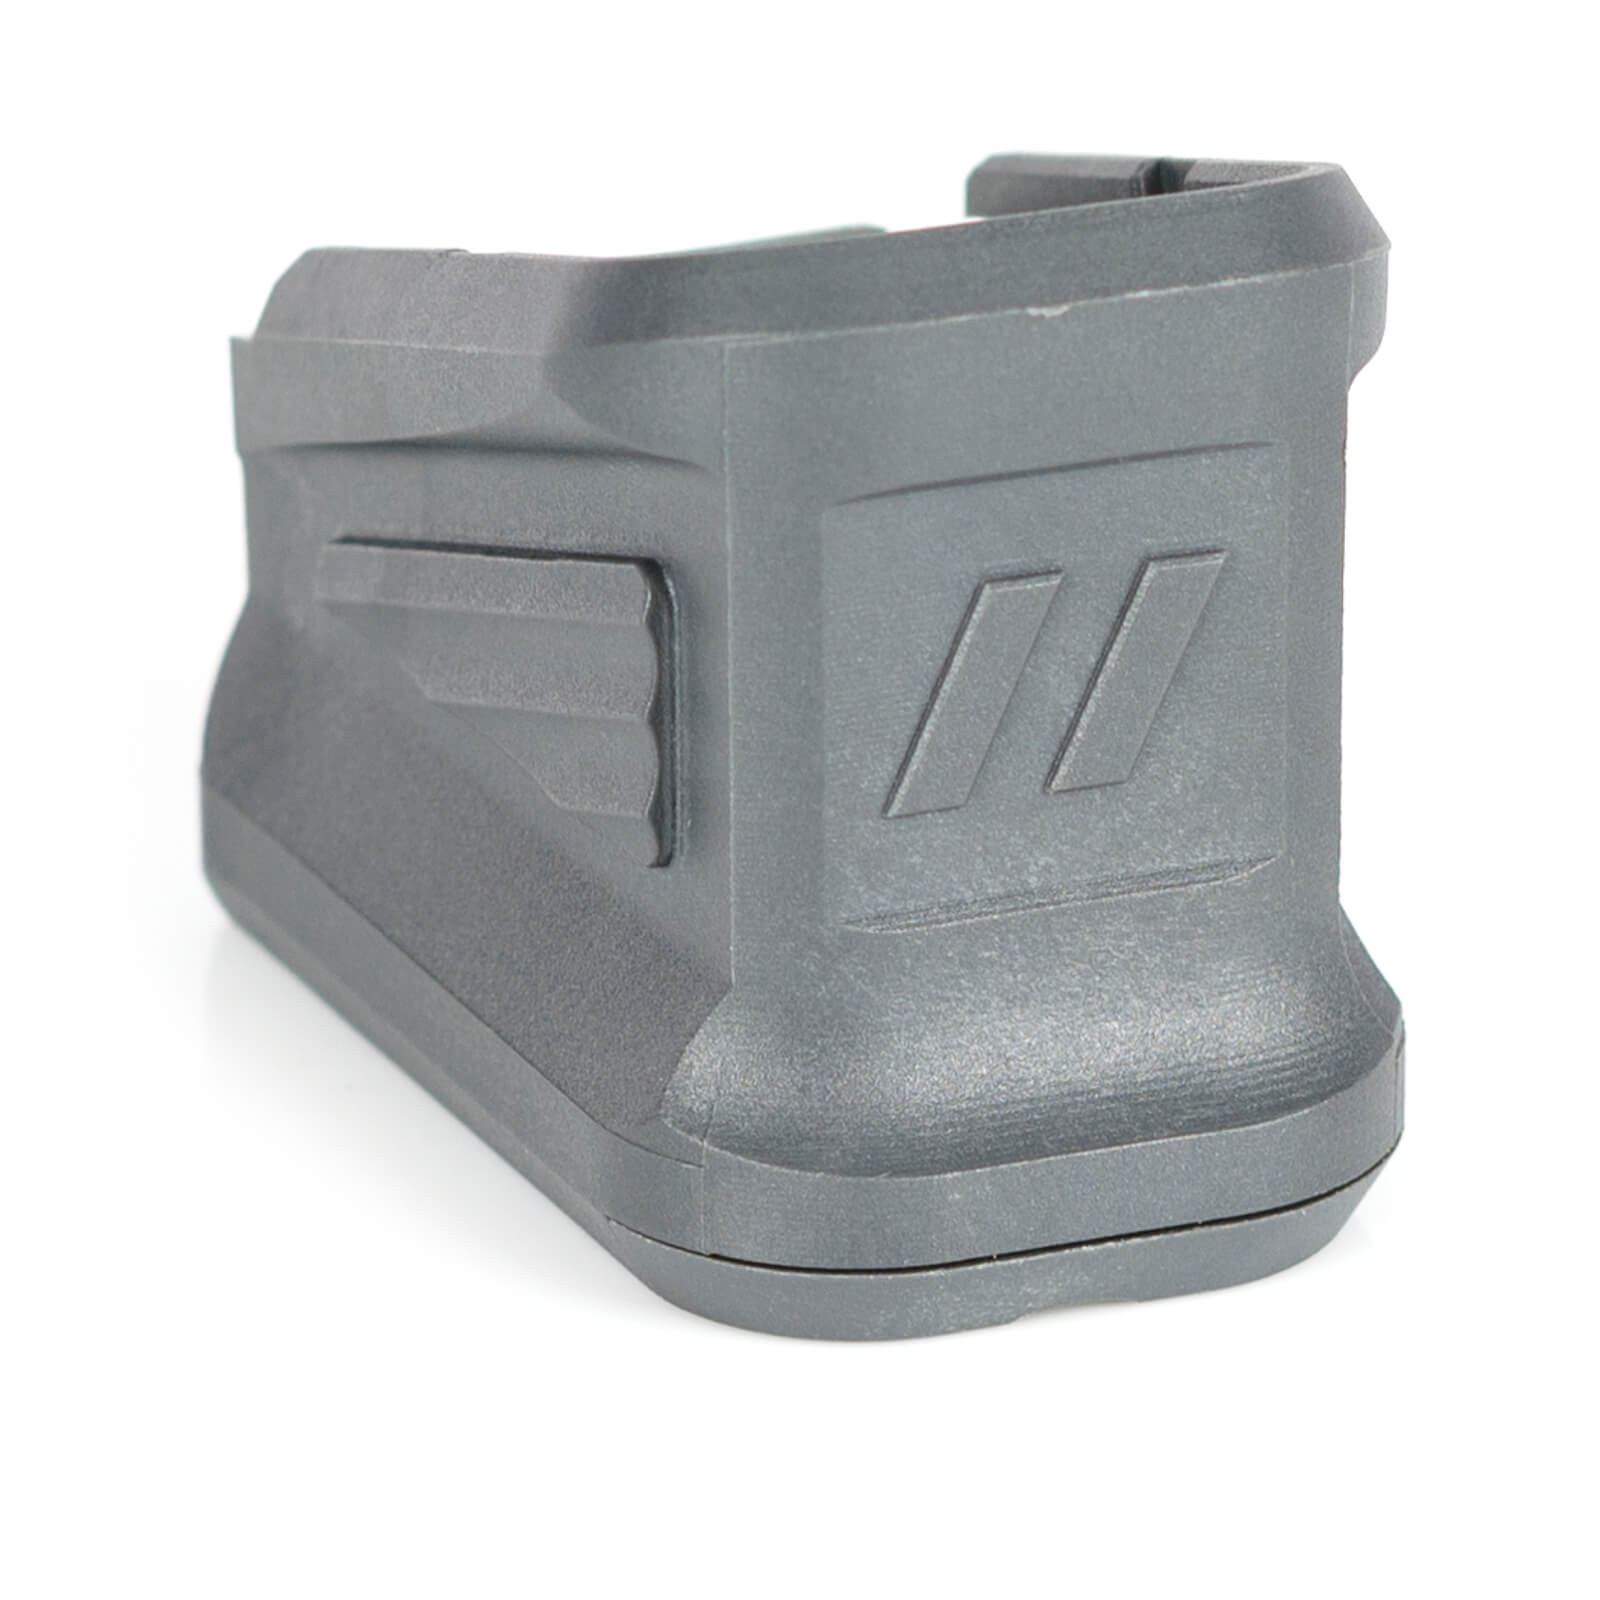 zev technologies polymer magazines base pads mag extensions glock 40sw 9mm